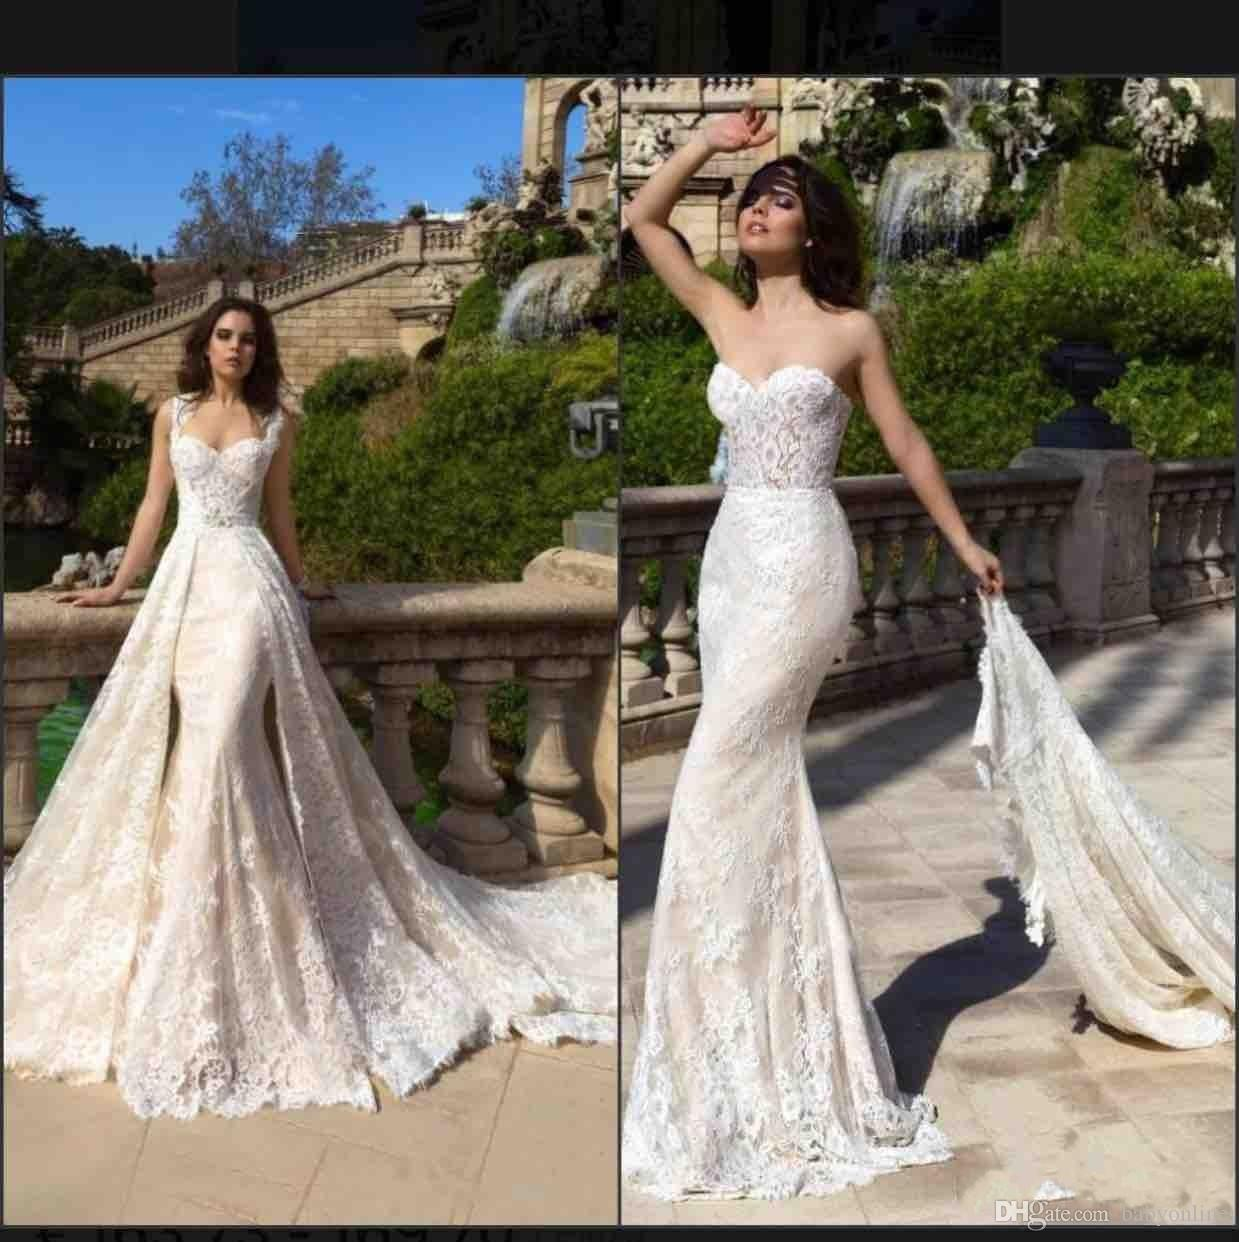 Delicate Lace Mermaid Wedding Dresses 2018 New Arrival Sweetheart Appliqued Bridal Gowns with Removable Overskirts Western Formal Vestidos